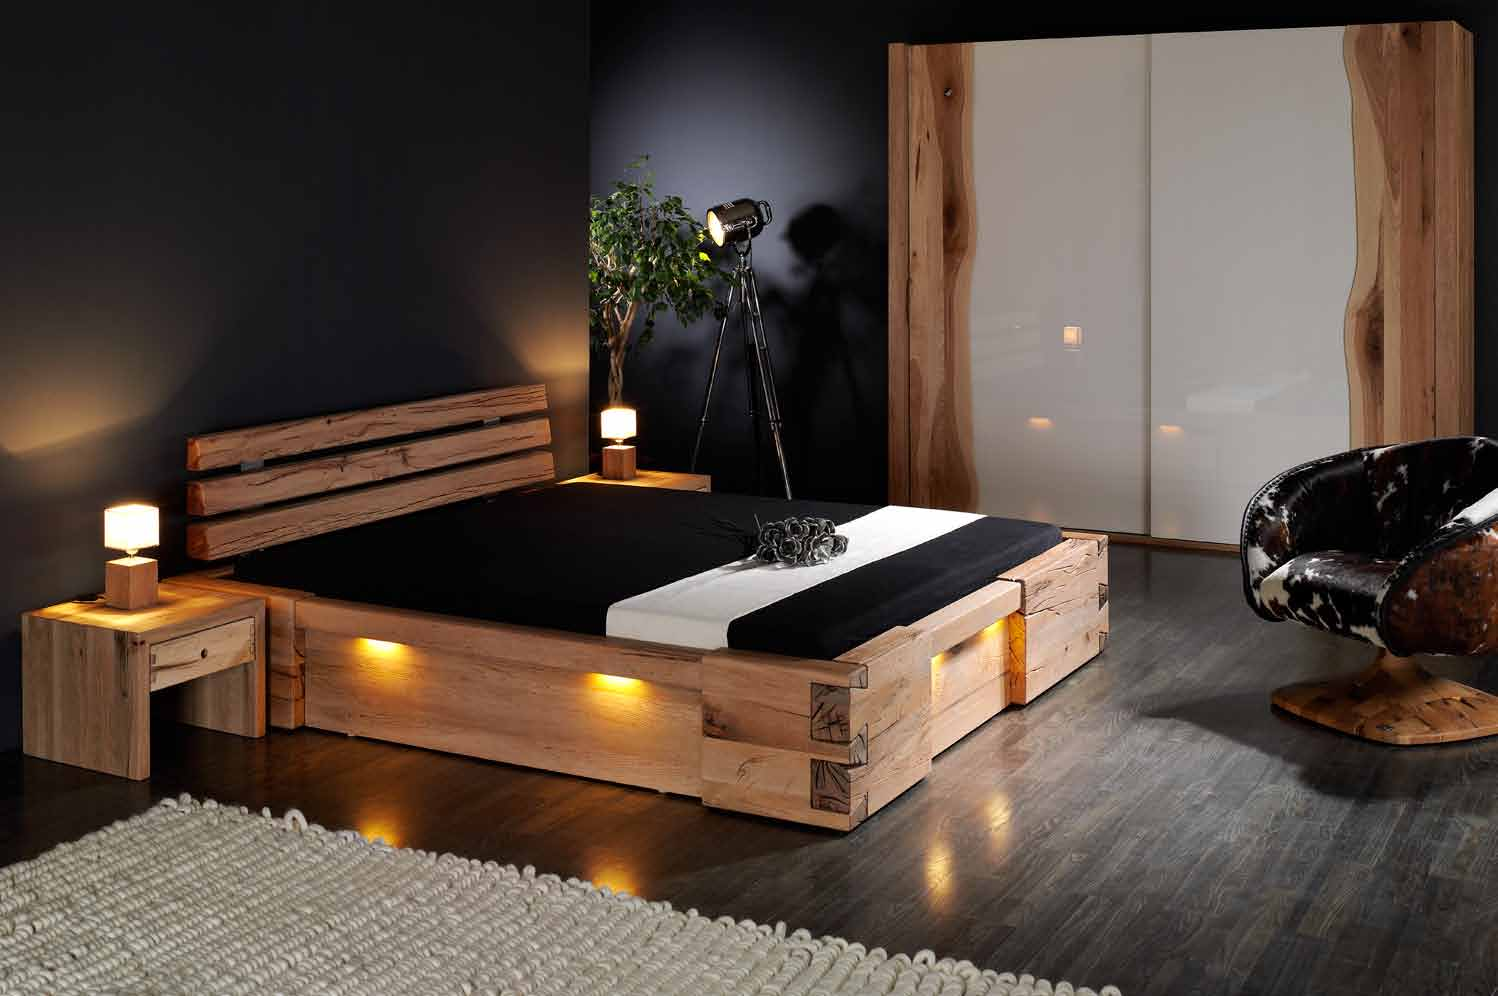 lit sprenger walk re boschung m bel ag. Black Bedroom Furniture Sets. Home Design Ideas